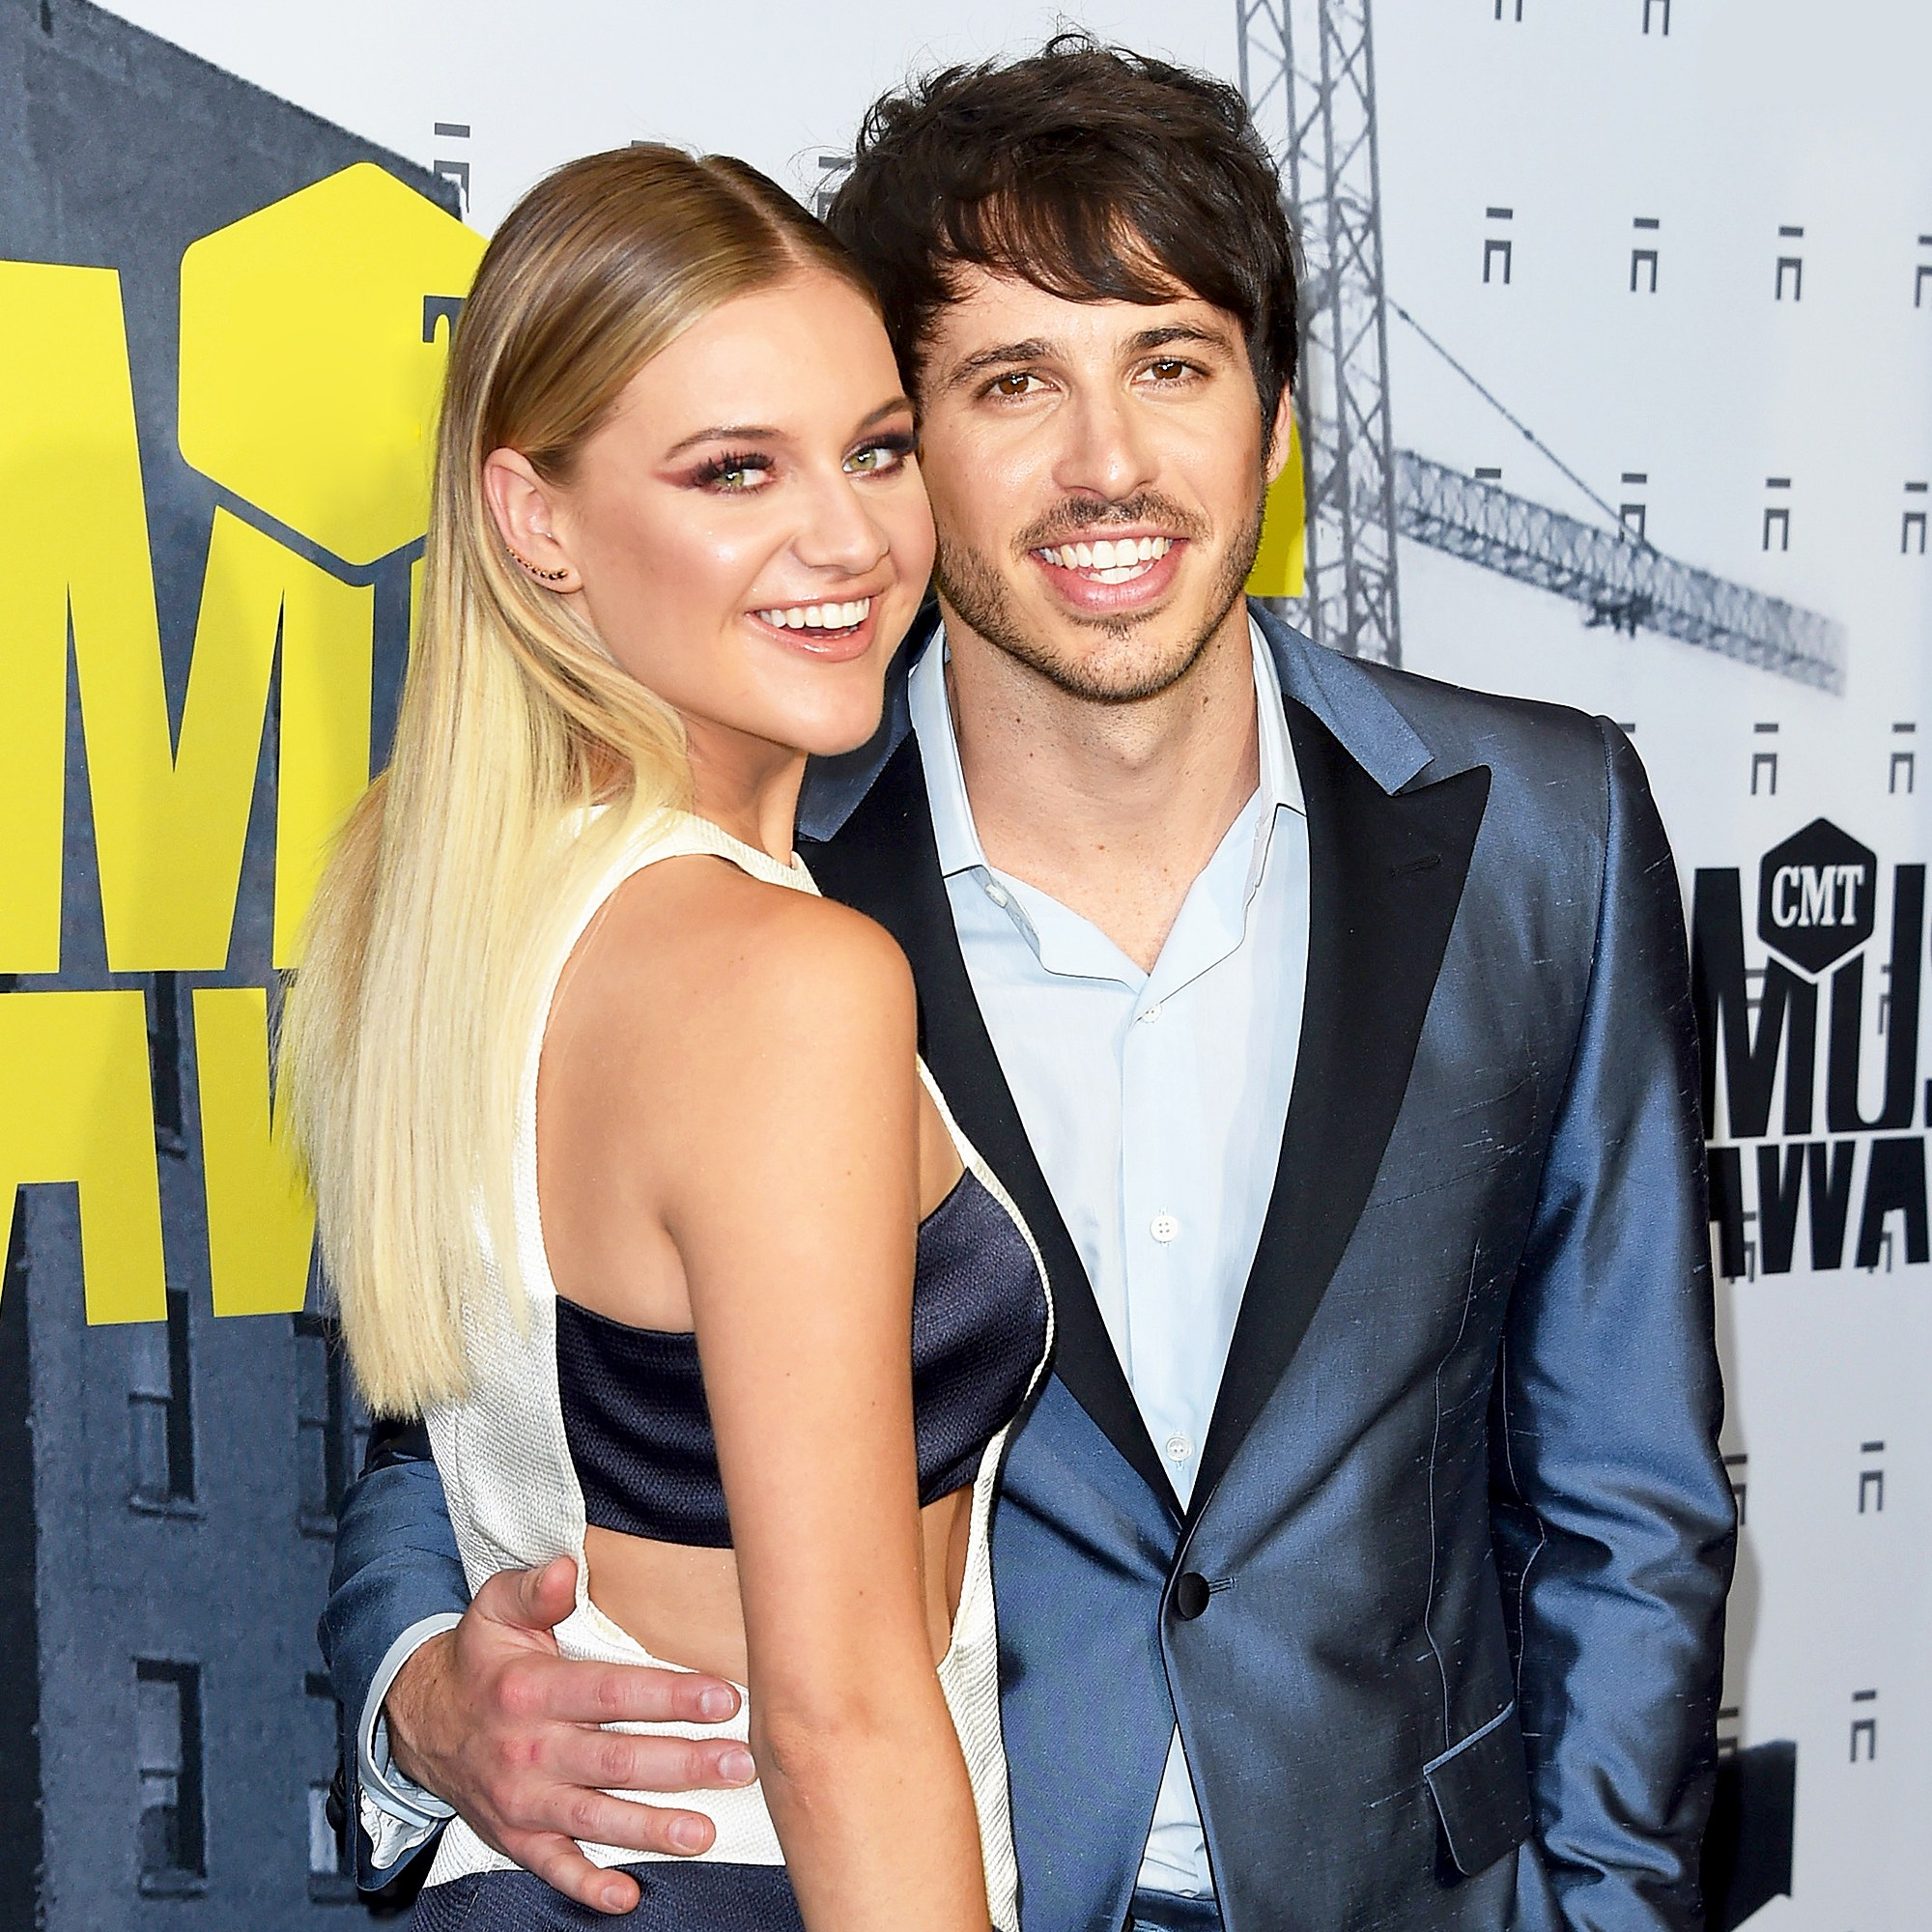 Kelsea Ballerini and Morgan Evans attend the 2017 CMT Music Awards at the Music City Center on June 7, 2017 in Nashville, Tennessee.